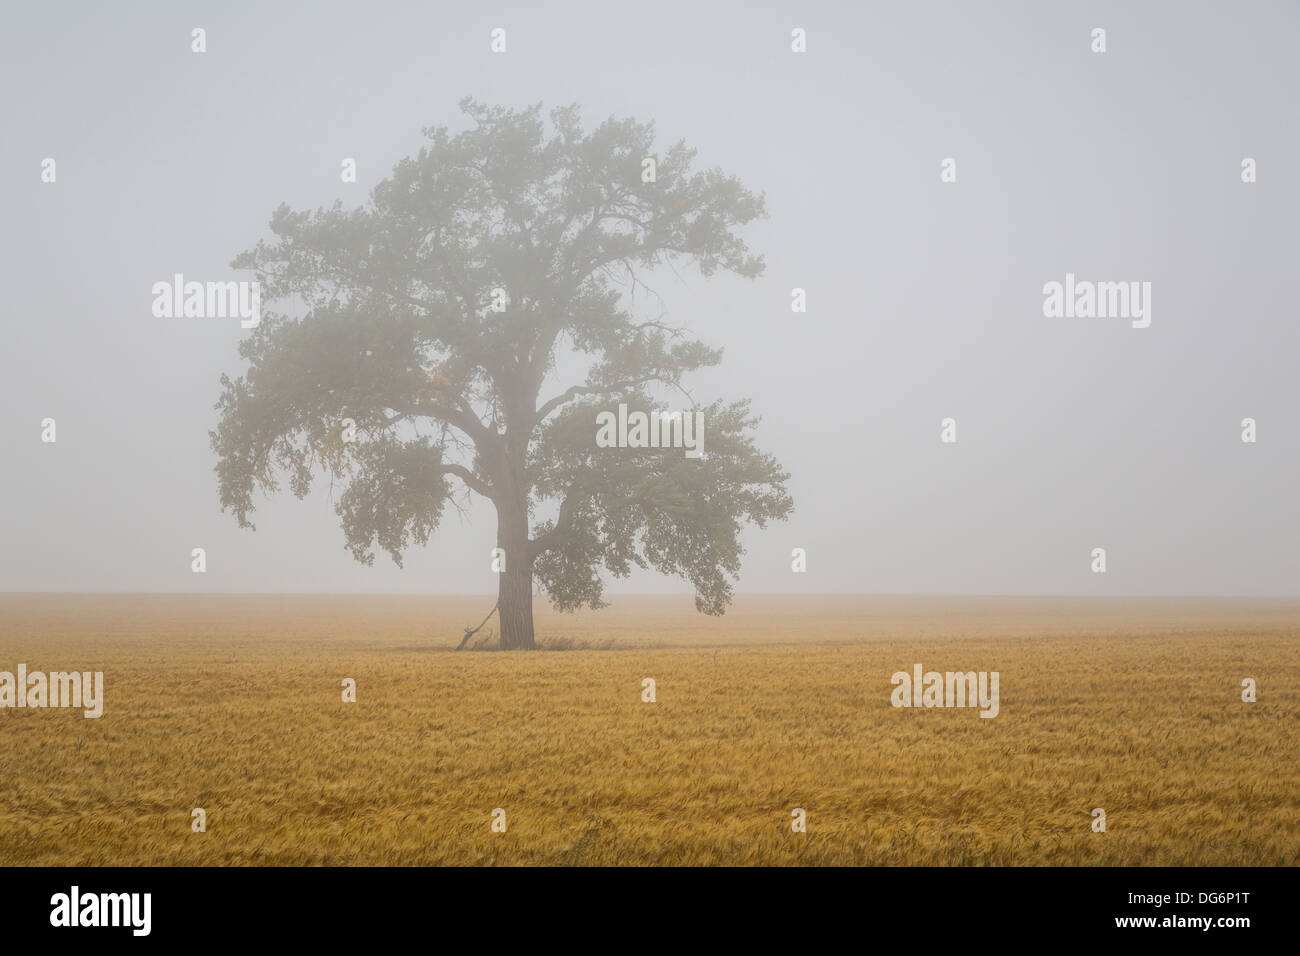 A lone tree in the fog with a ripe grain field near Linton, North Dakota, USA. - Stock Image